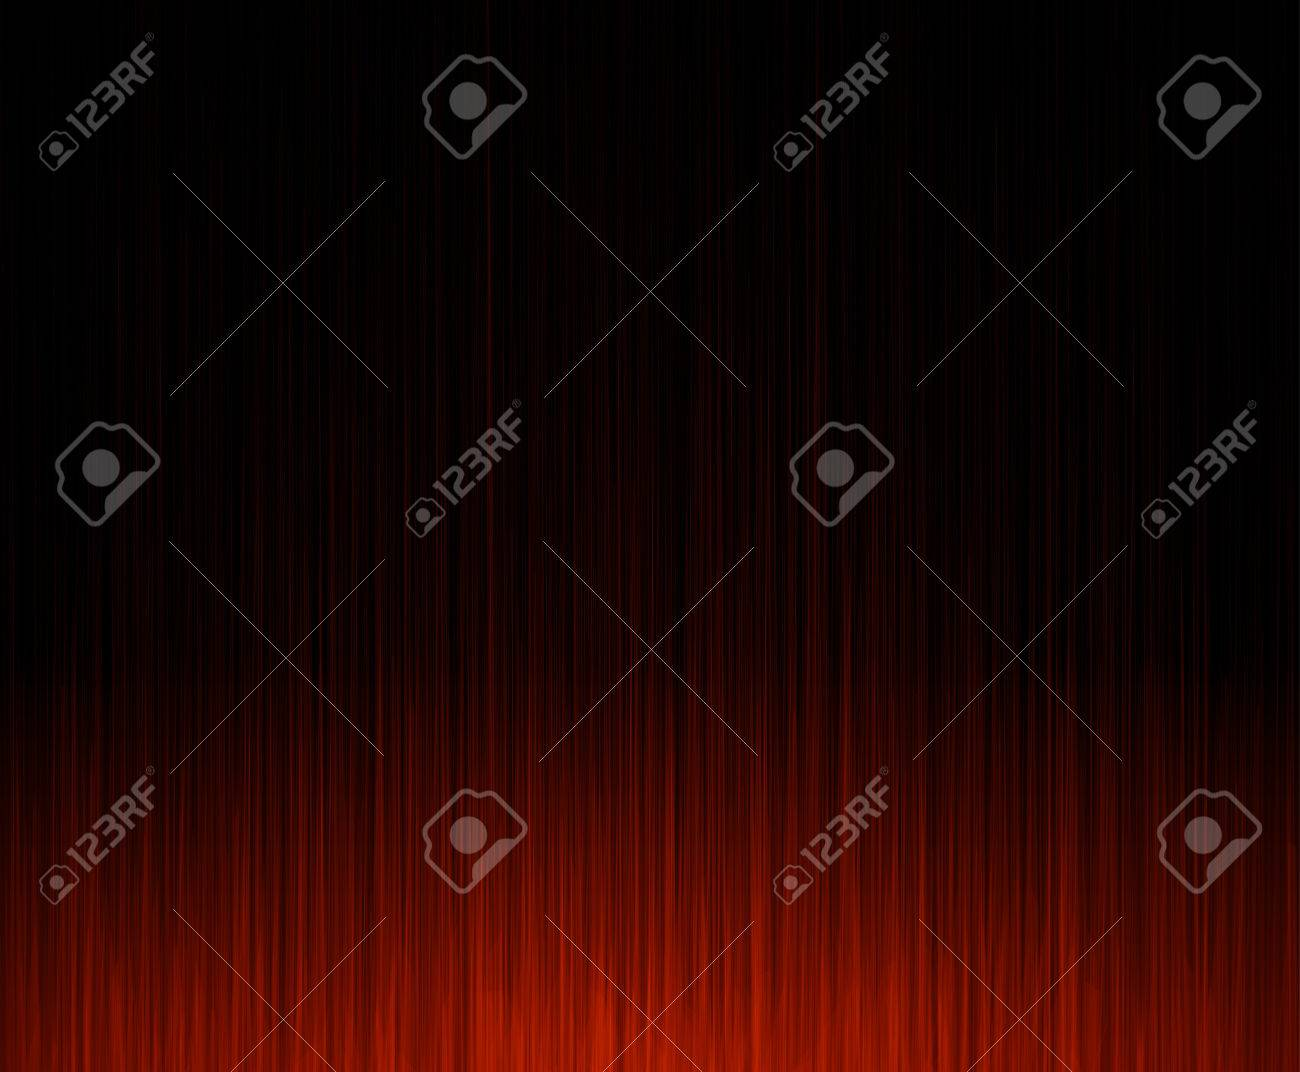 Abstract gradient line red background. - 60173410